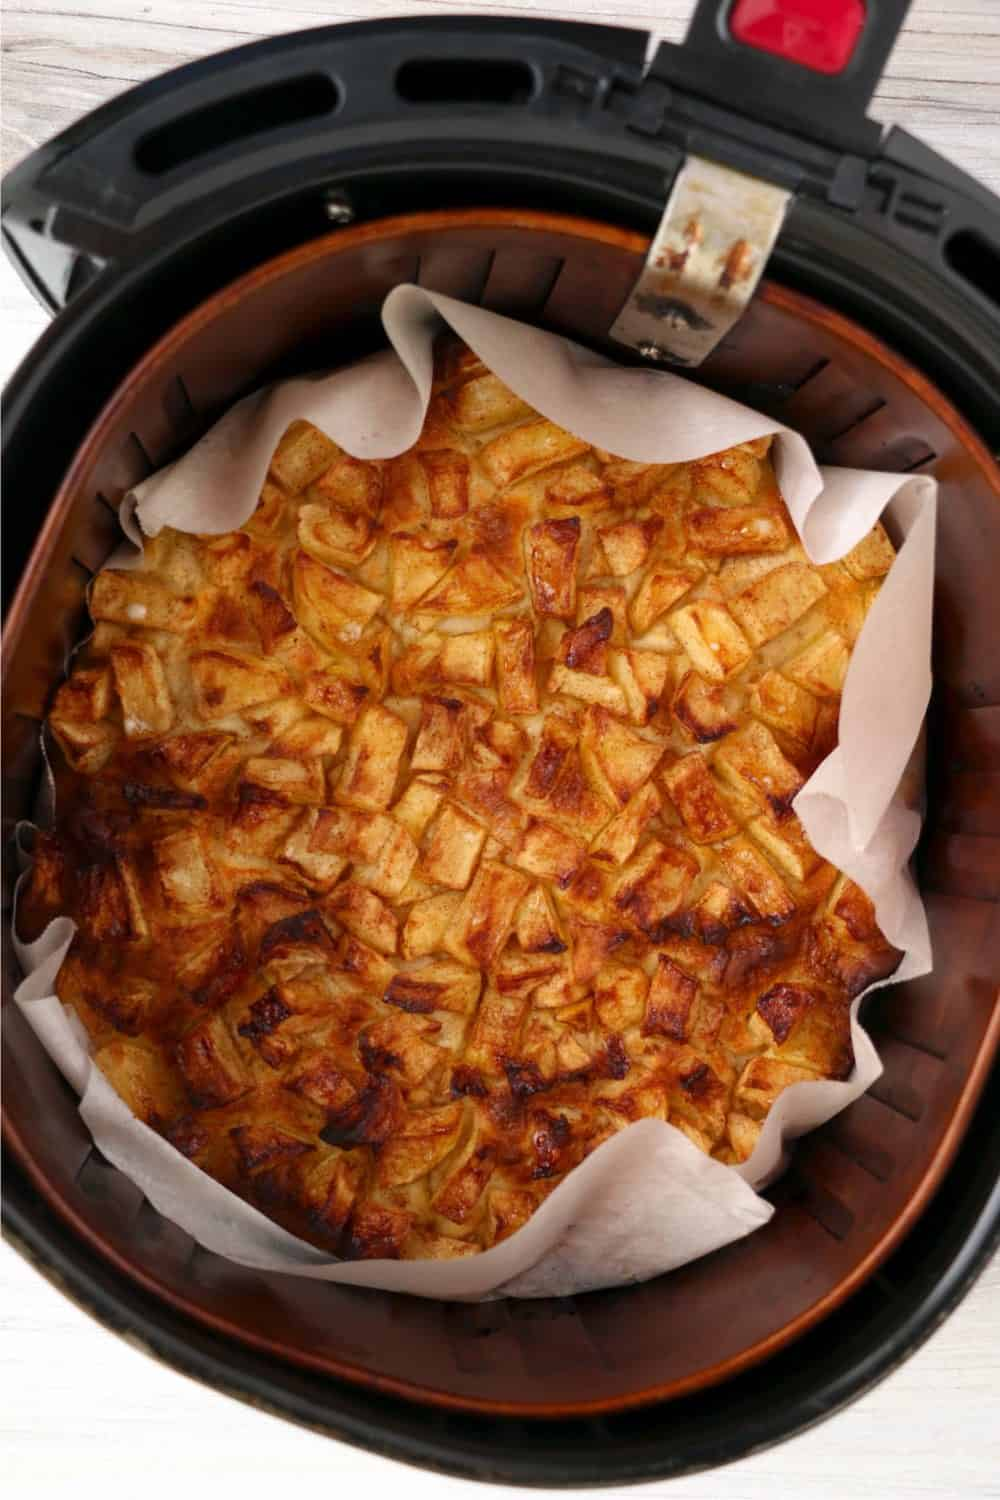 apple danish made in the air fryer